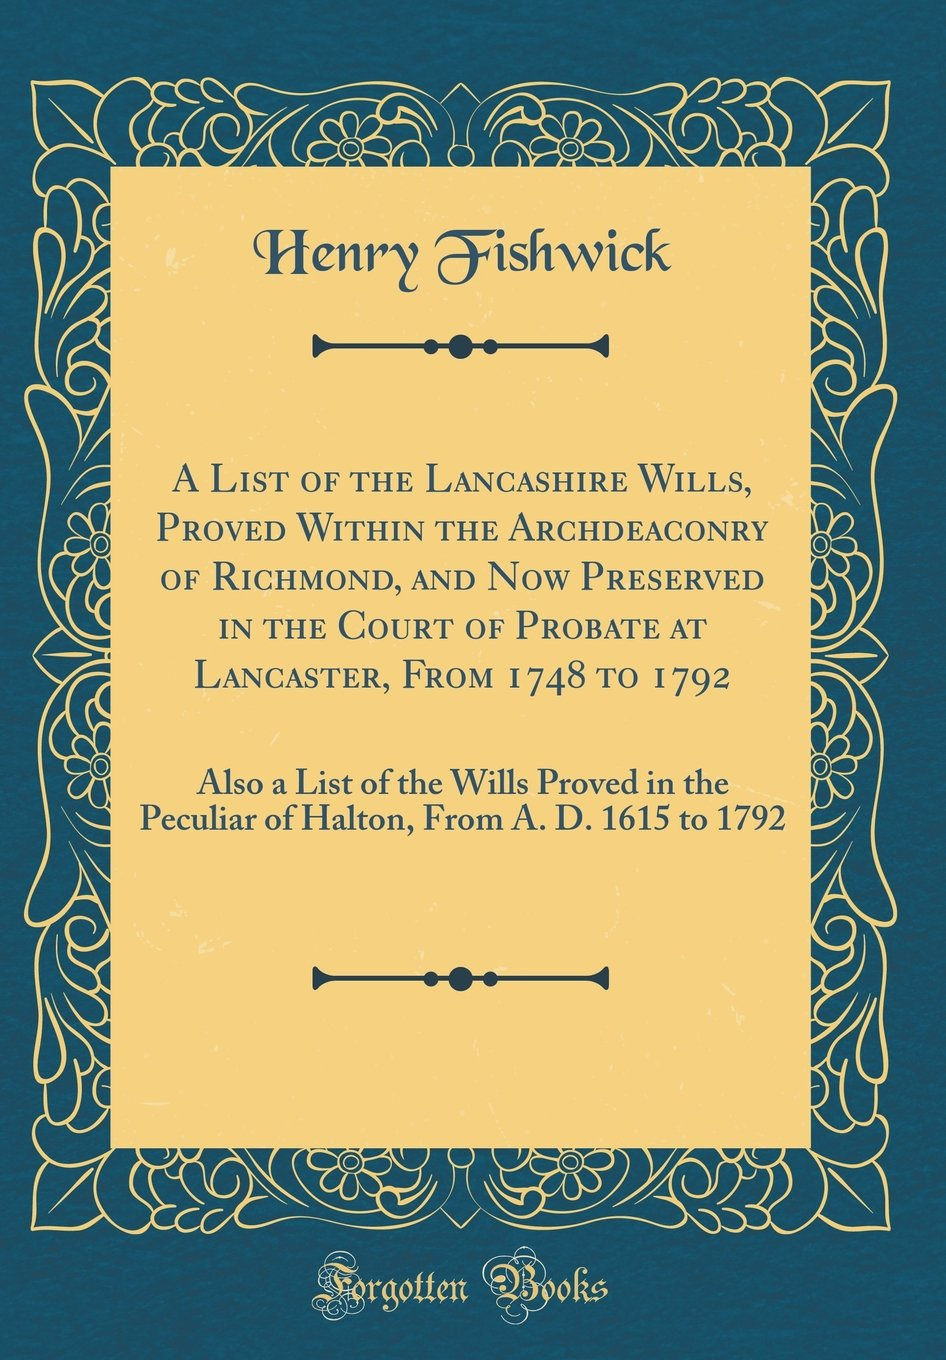 A List of the Lancashire Wills, Proved Within the Archdeaconry of Richmond, and Now Preserved in the Court of Probate at Lancaster, from 1748 to 1792: ... from A. D. 1615 to 1792 (Classic Reprint) pdf epub